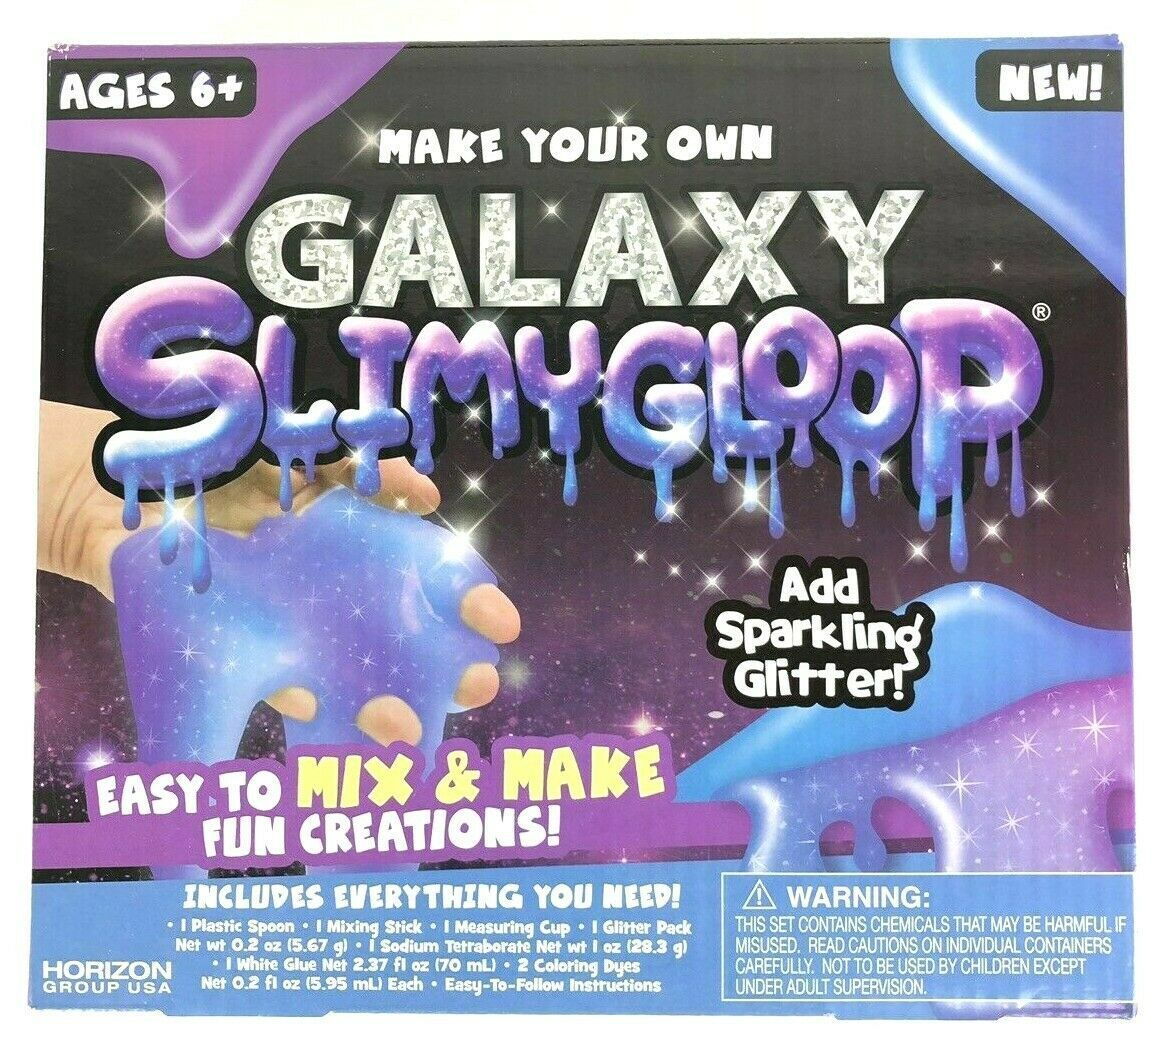 Make Your Own Galaxy Glitter Slimygloop Kit Mix and make Slime NEW sealed BOX